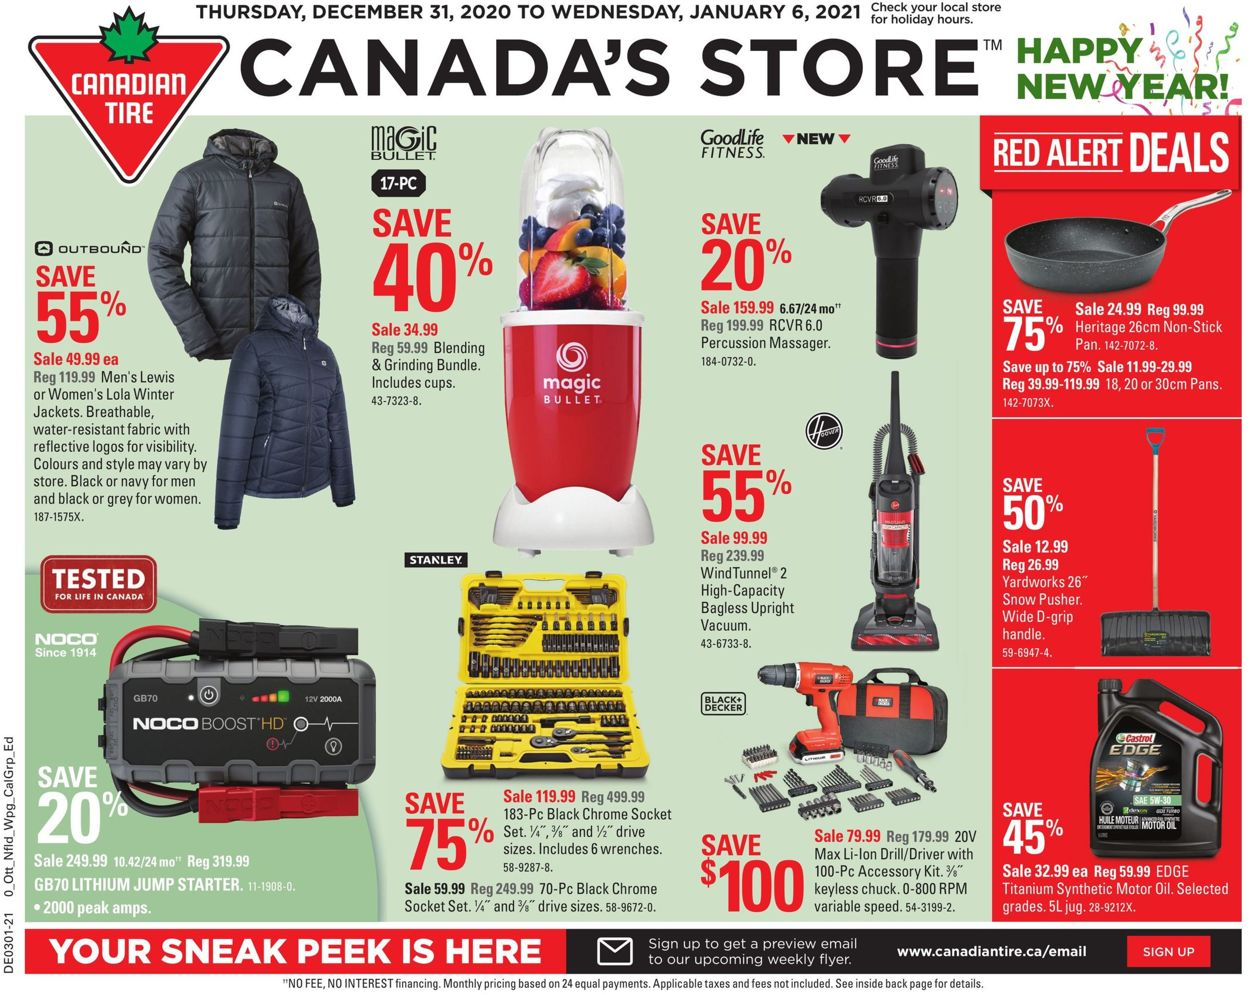 Canadian Tire- Happy New Year 2021 Flyer - 12/31-01/06/2021